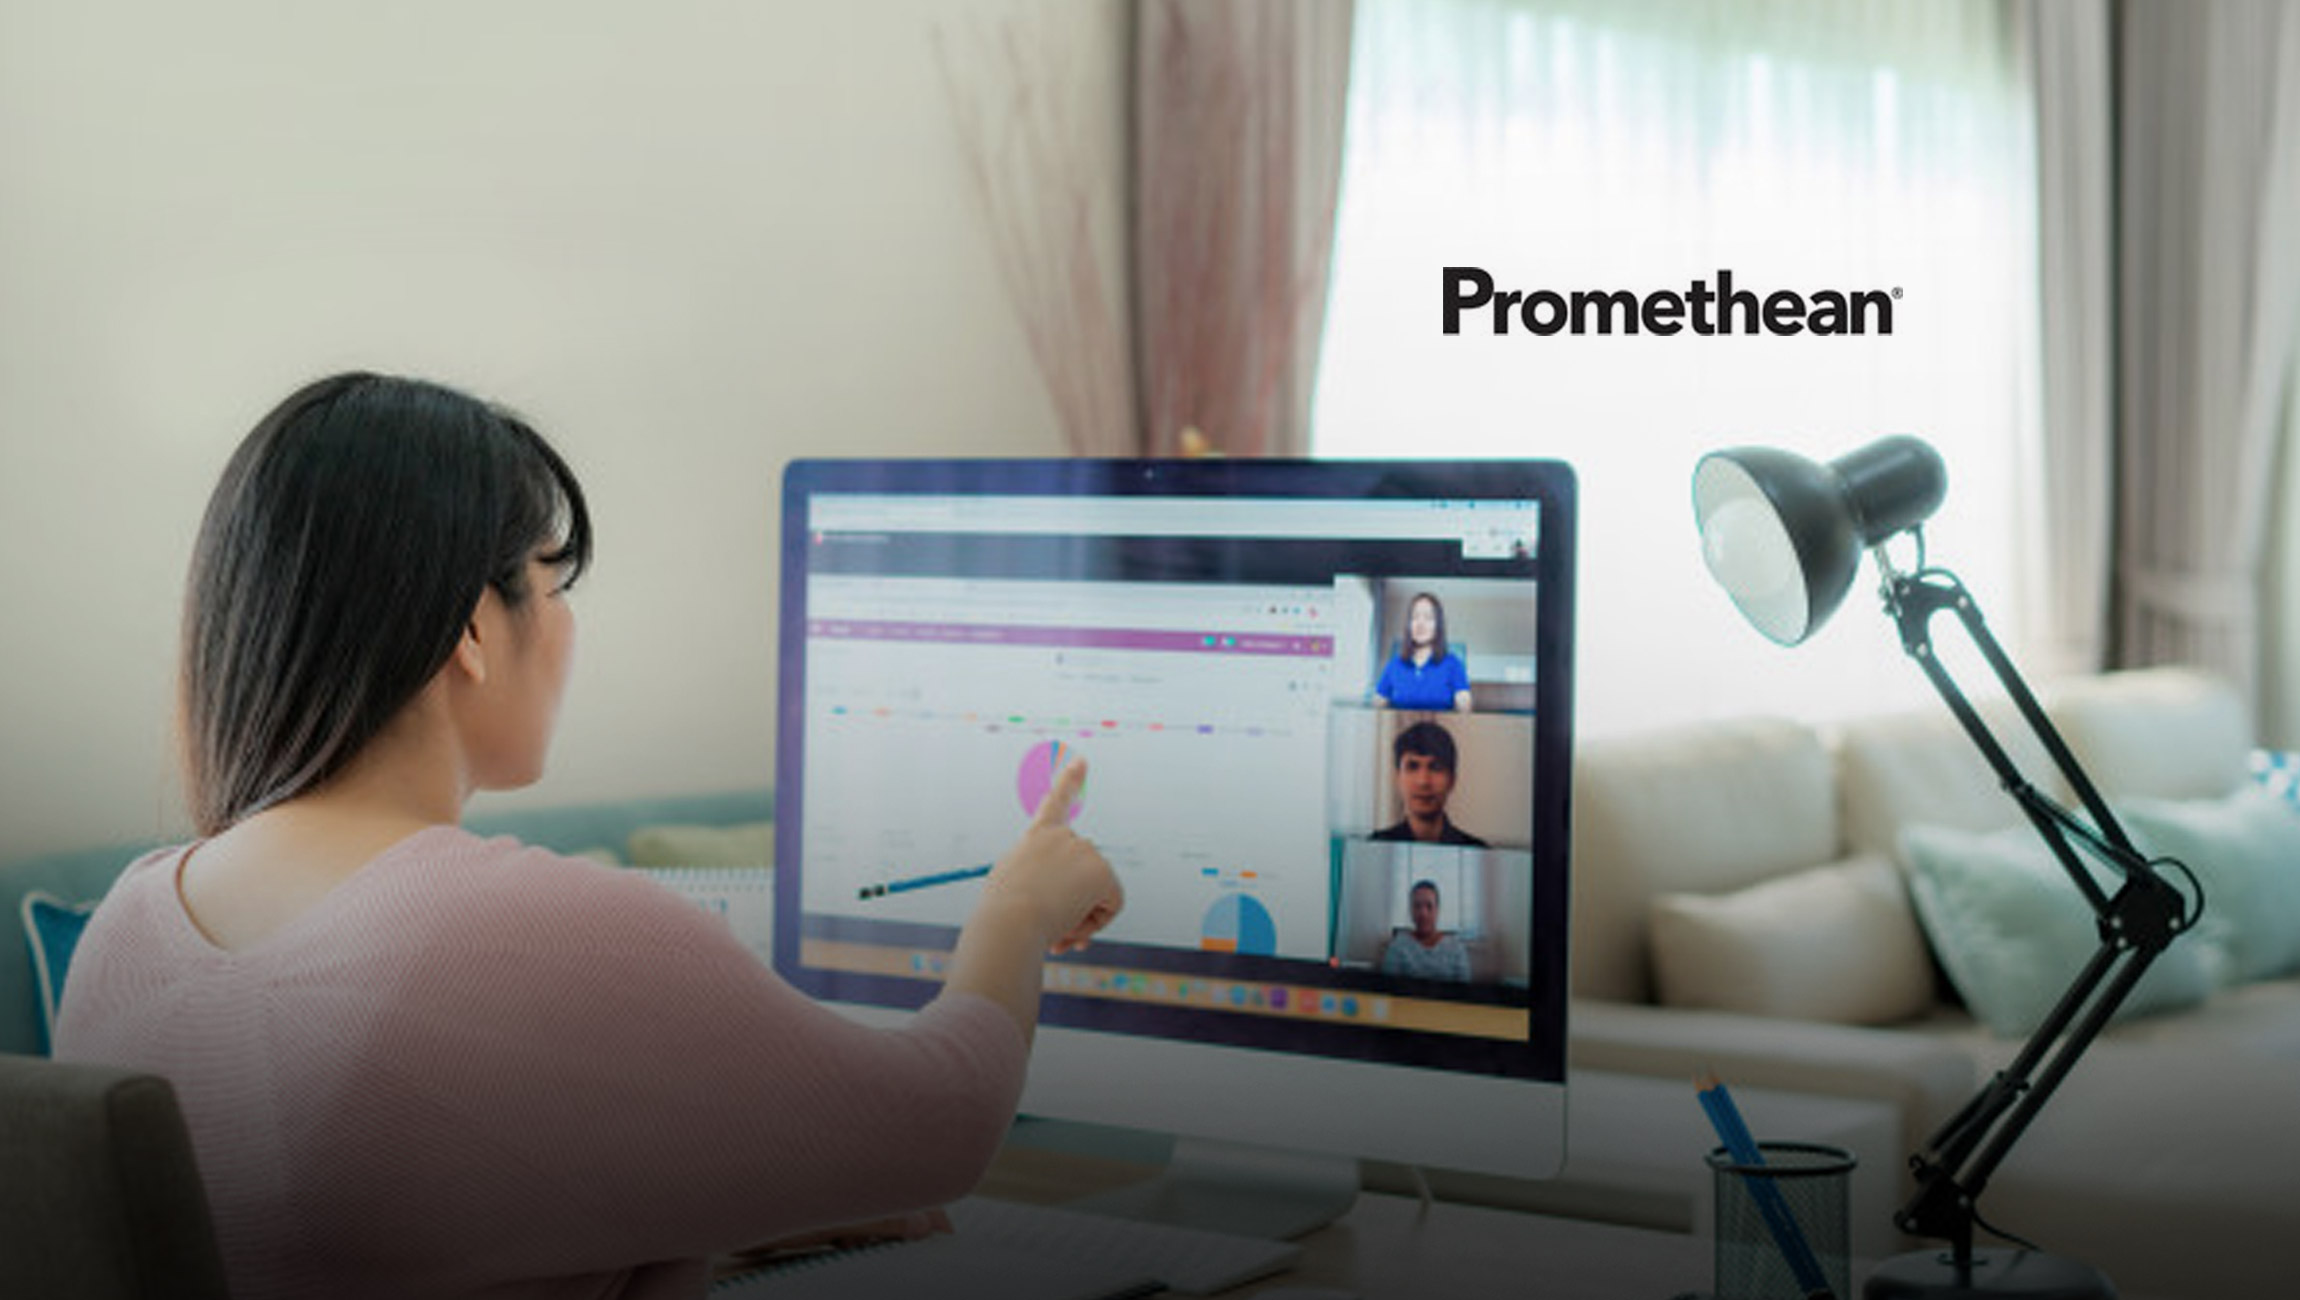 Promethean Makes Classroom Teaching and Management Easier with New Product Enhancements